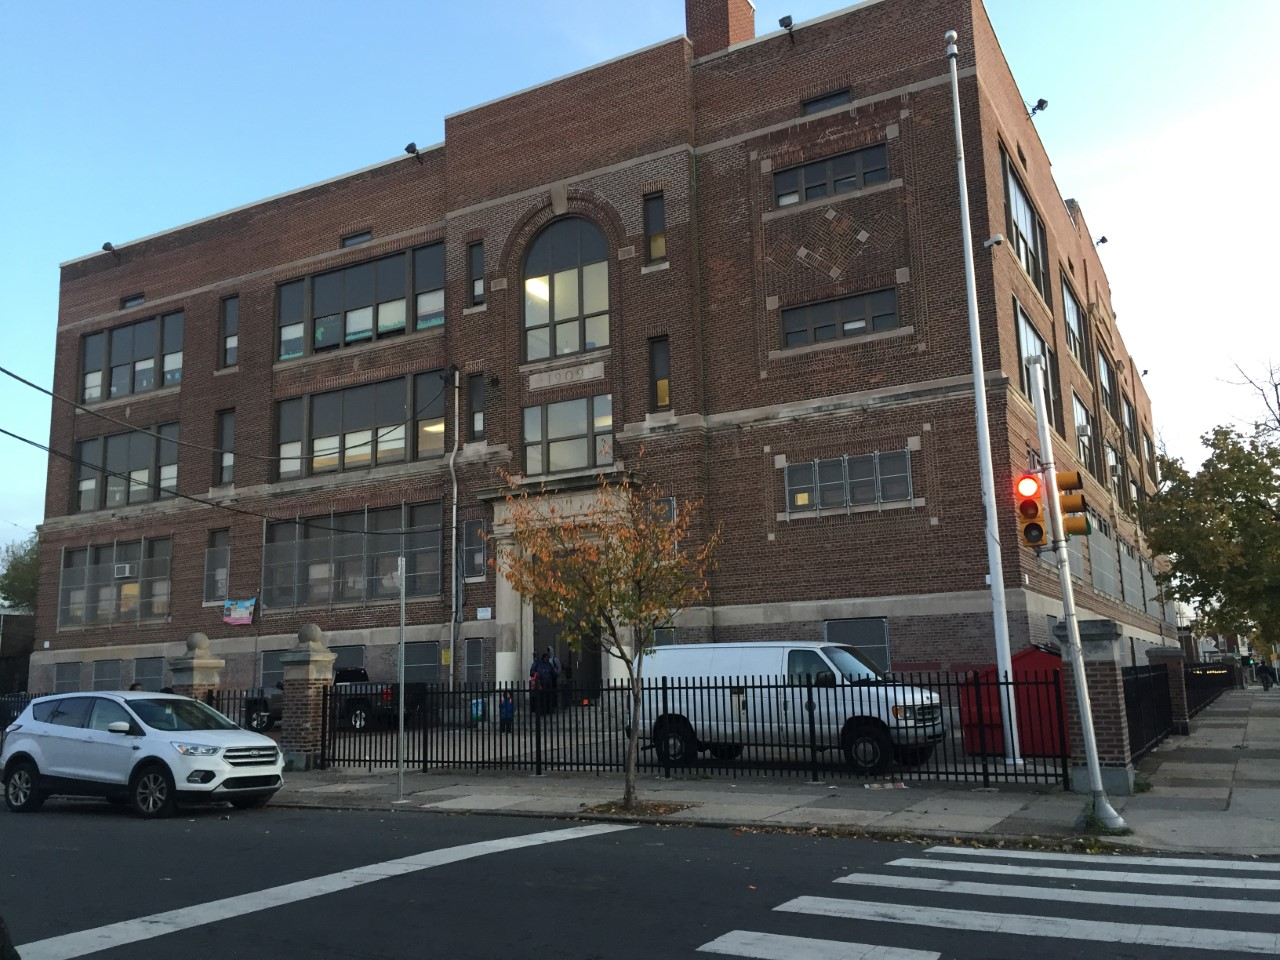 Anger, confusion reign at North Philly school plagued by asbestos